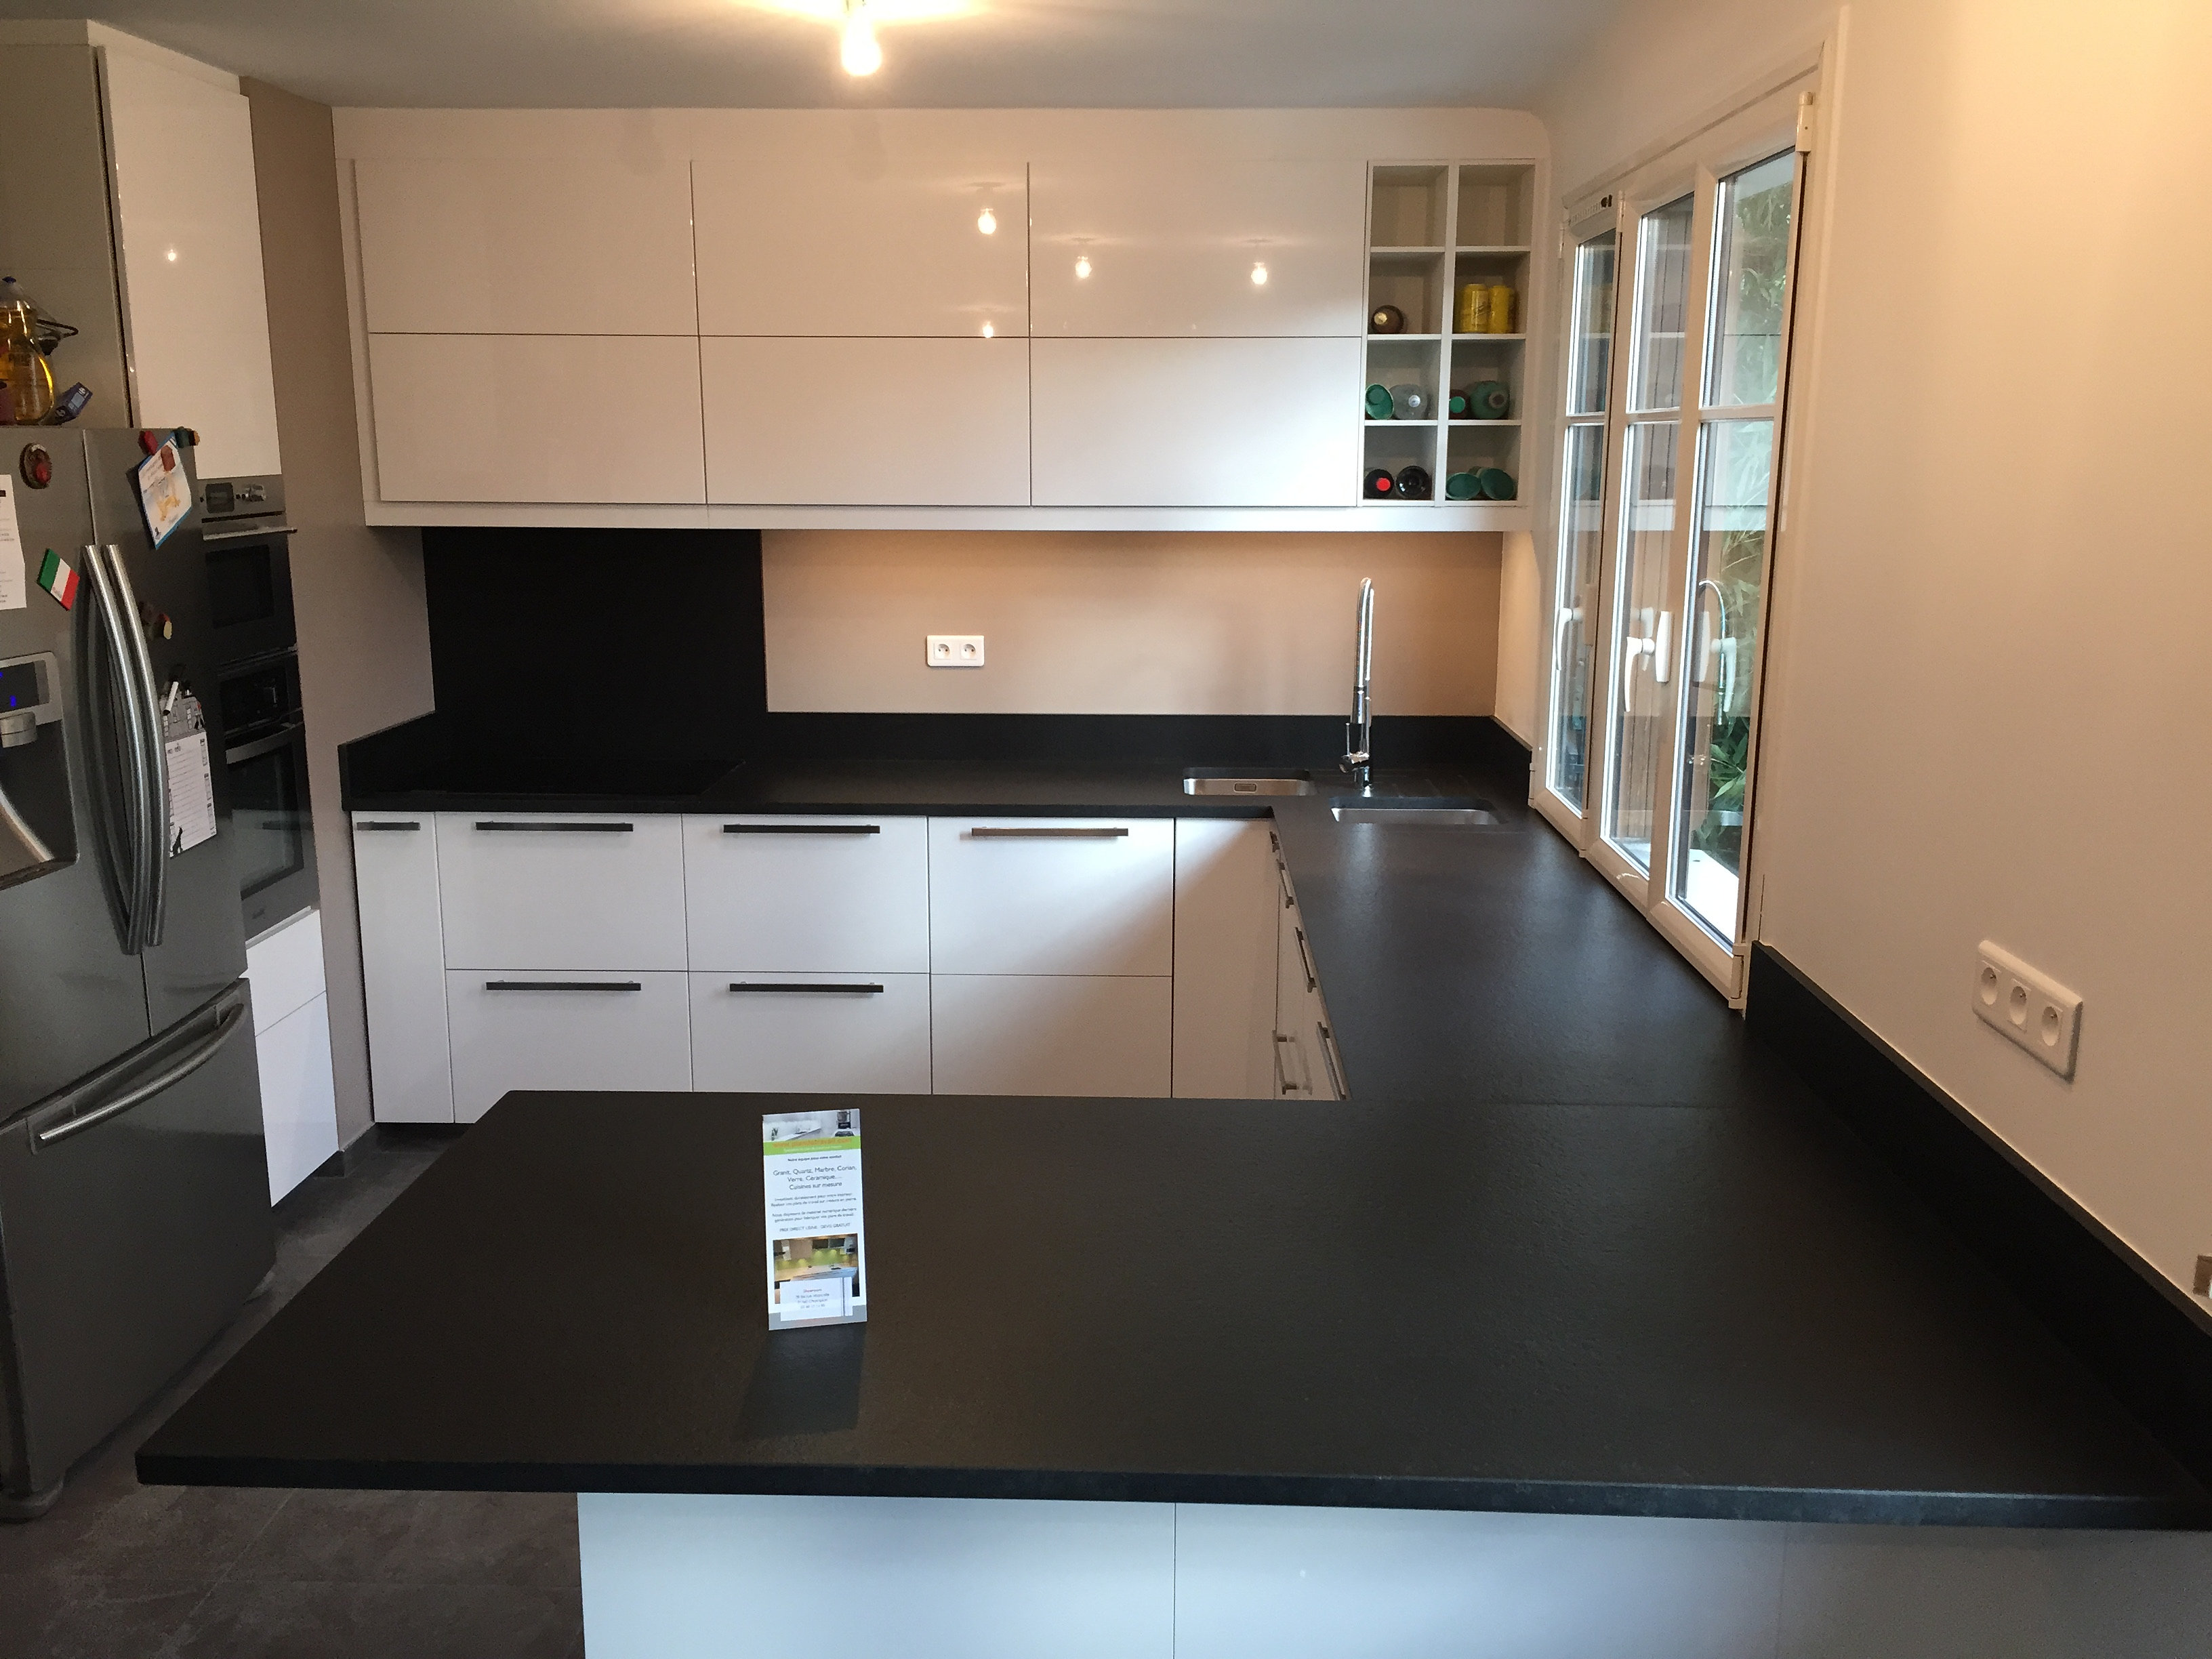 Plan de travail granit quartz table en mabre paris - Finition plan de travail ...